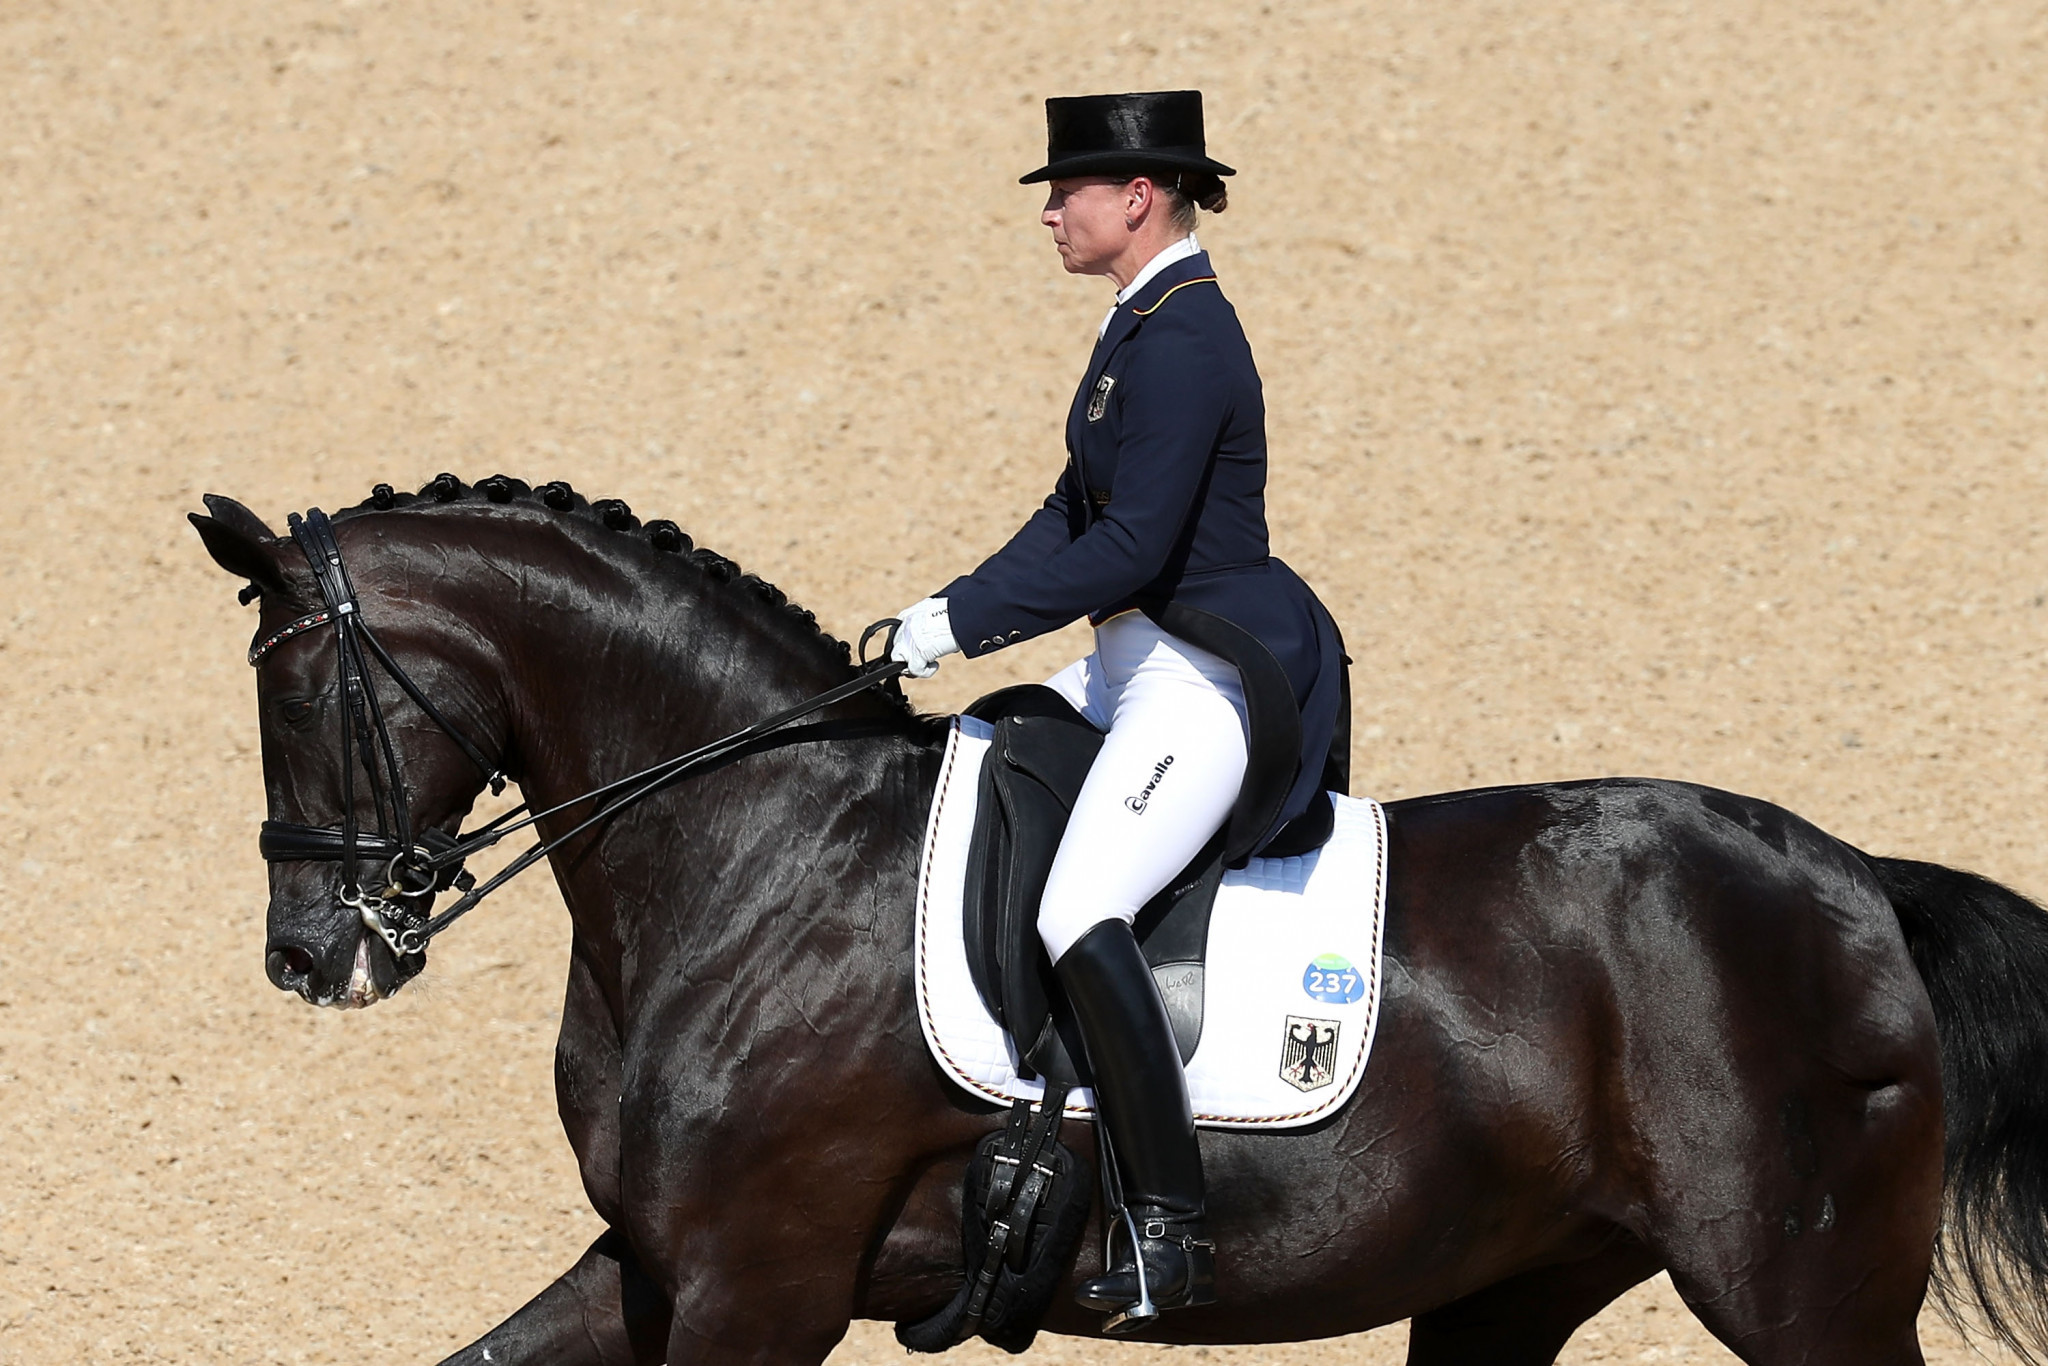 2017 proved to be quite some year for Isabell Werth, of Germany, seen here riding Weihegold Old in the Dressage at Rio 2016 ©Getty Images